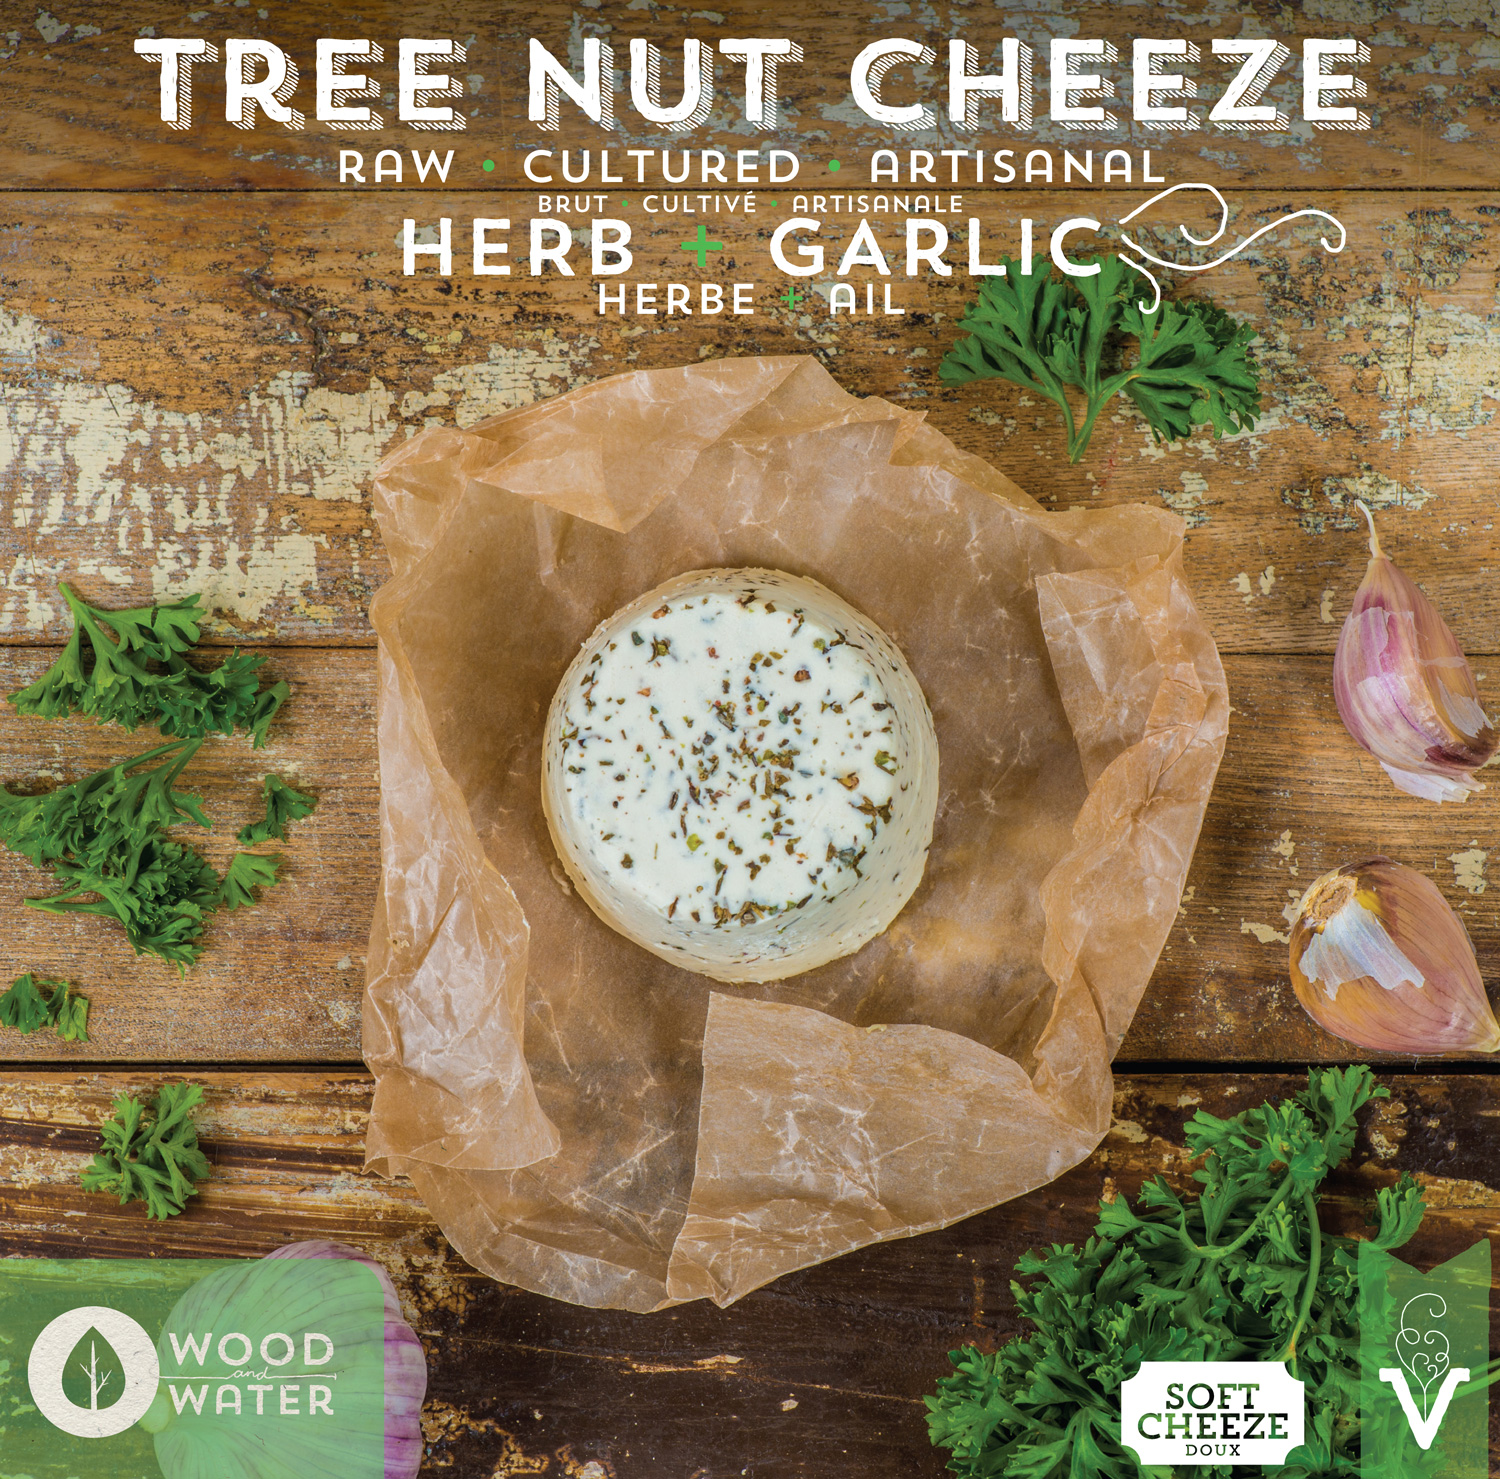 Buttery and savory, firm but creamy, with classic herbs and spices. Lovely on crackers, melted on a baked potato or pasta, or as a delicious spread on some sprouted toast. Photo by   Culcherd